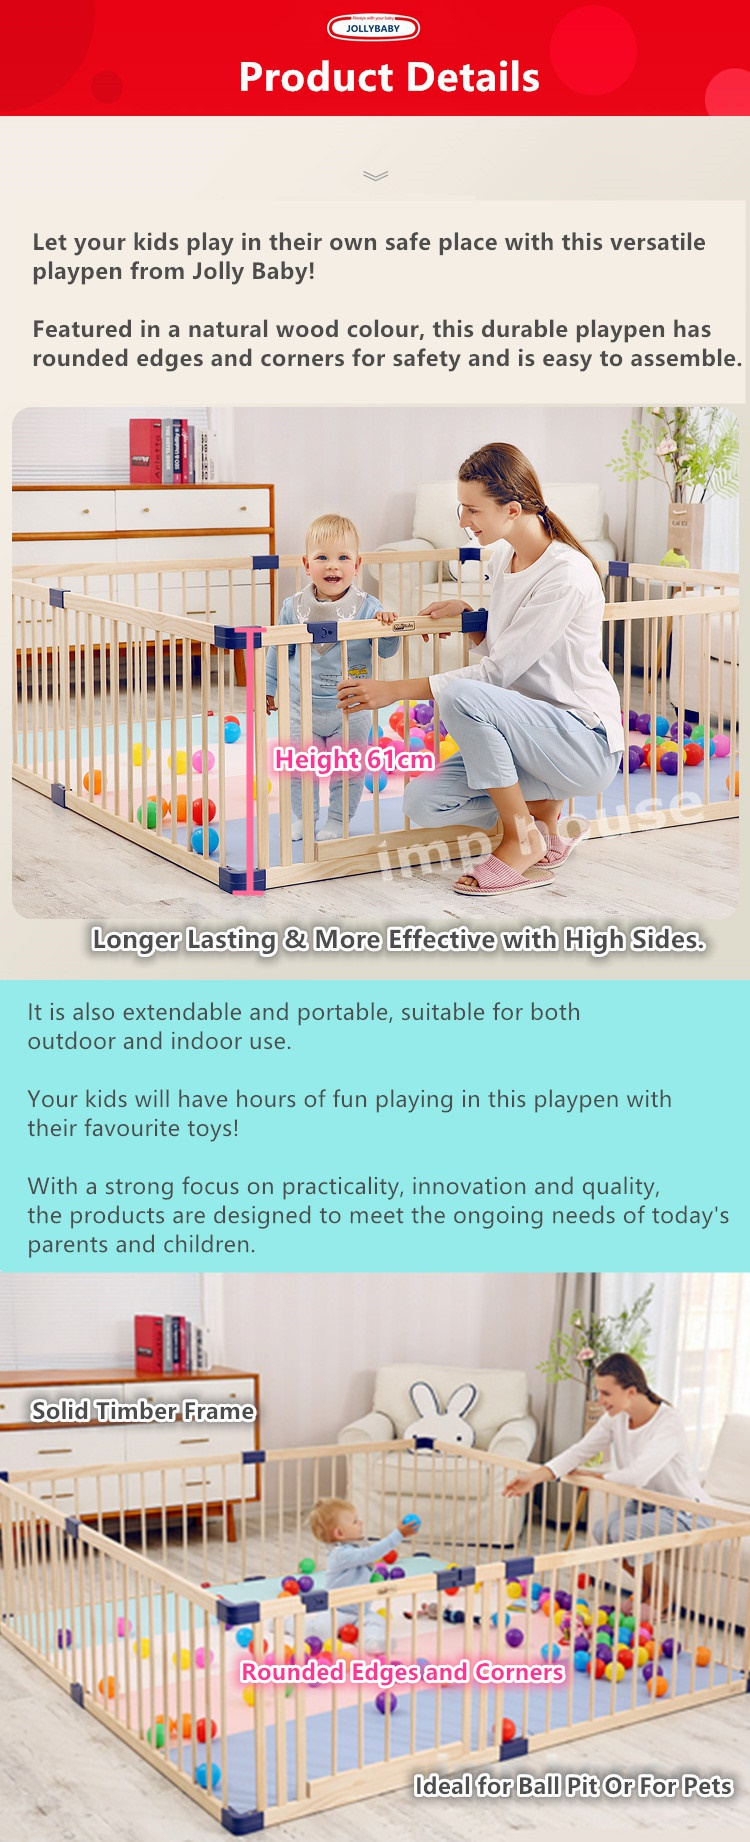 6pcsset Pet Play Fence Playpen Portable Panel Play Yard